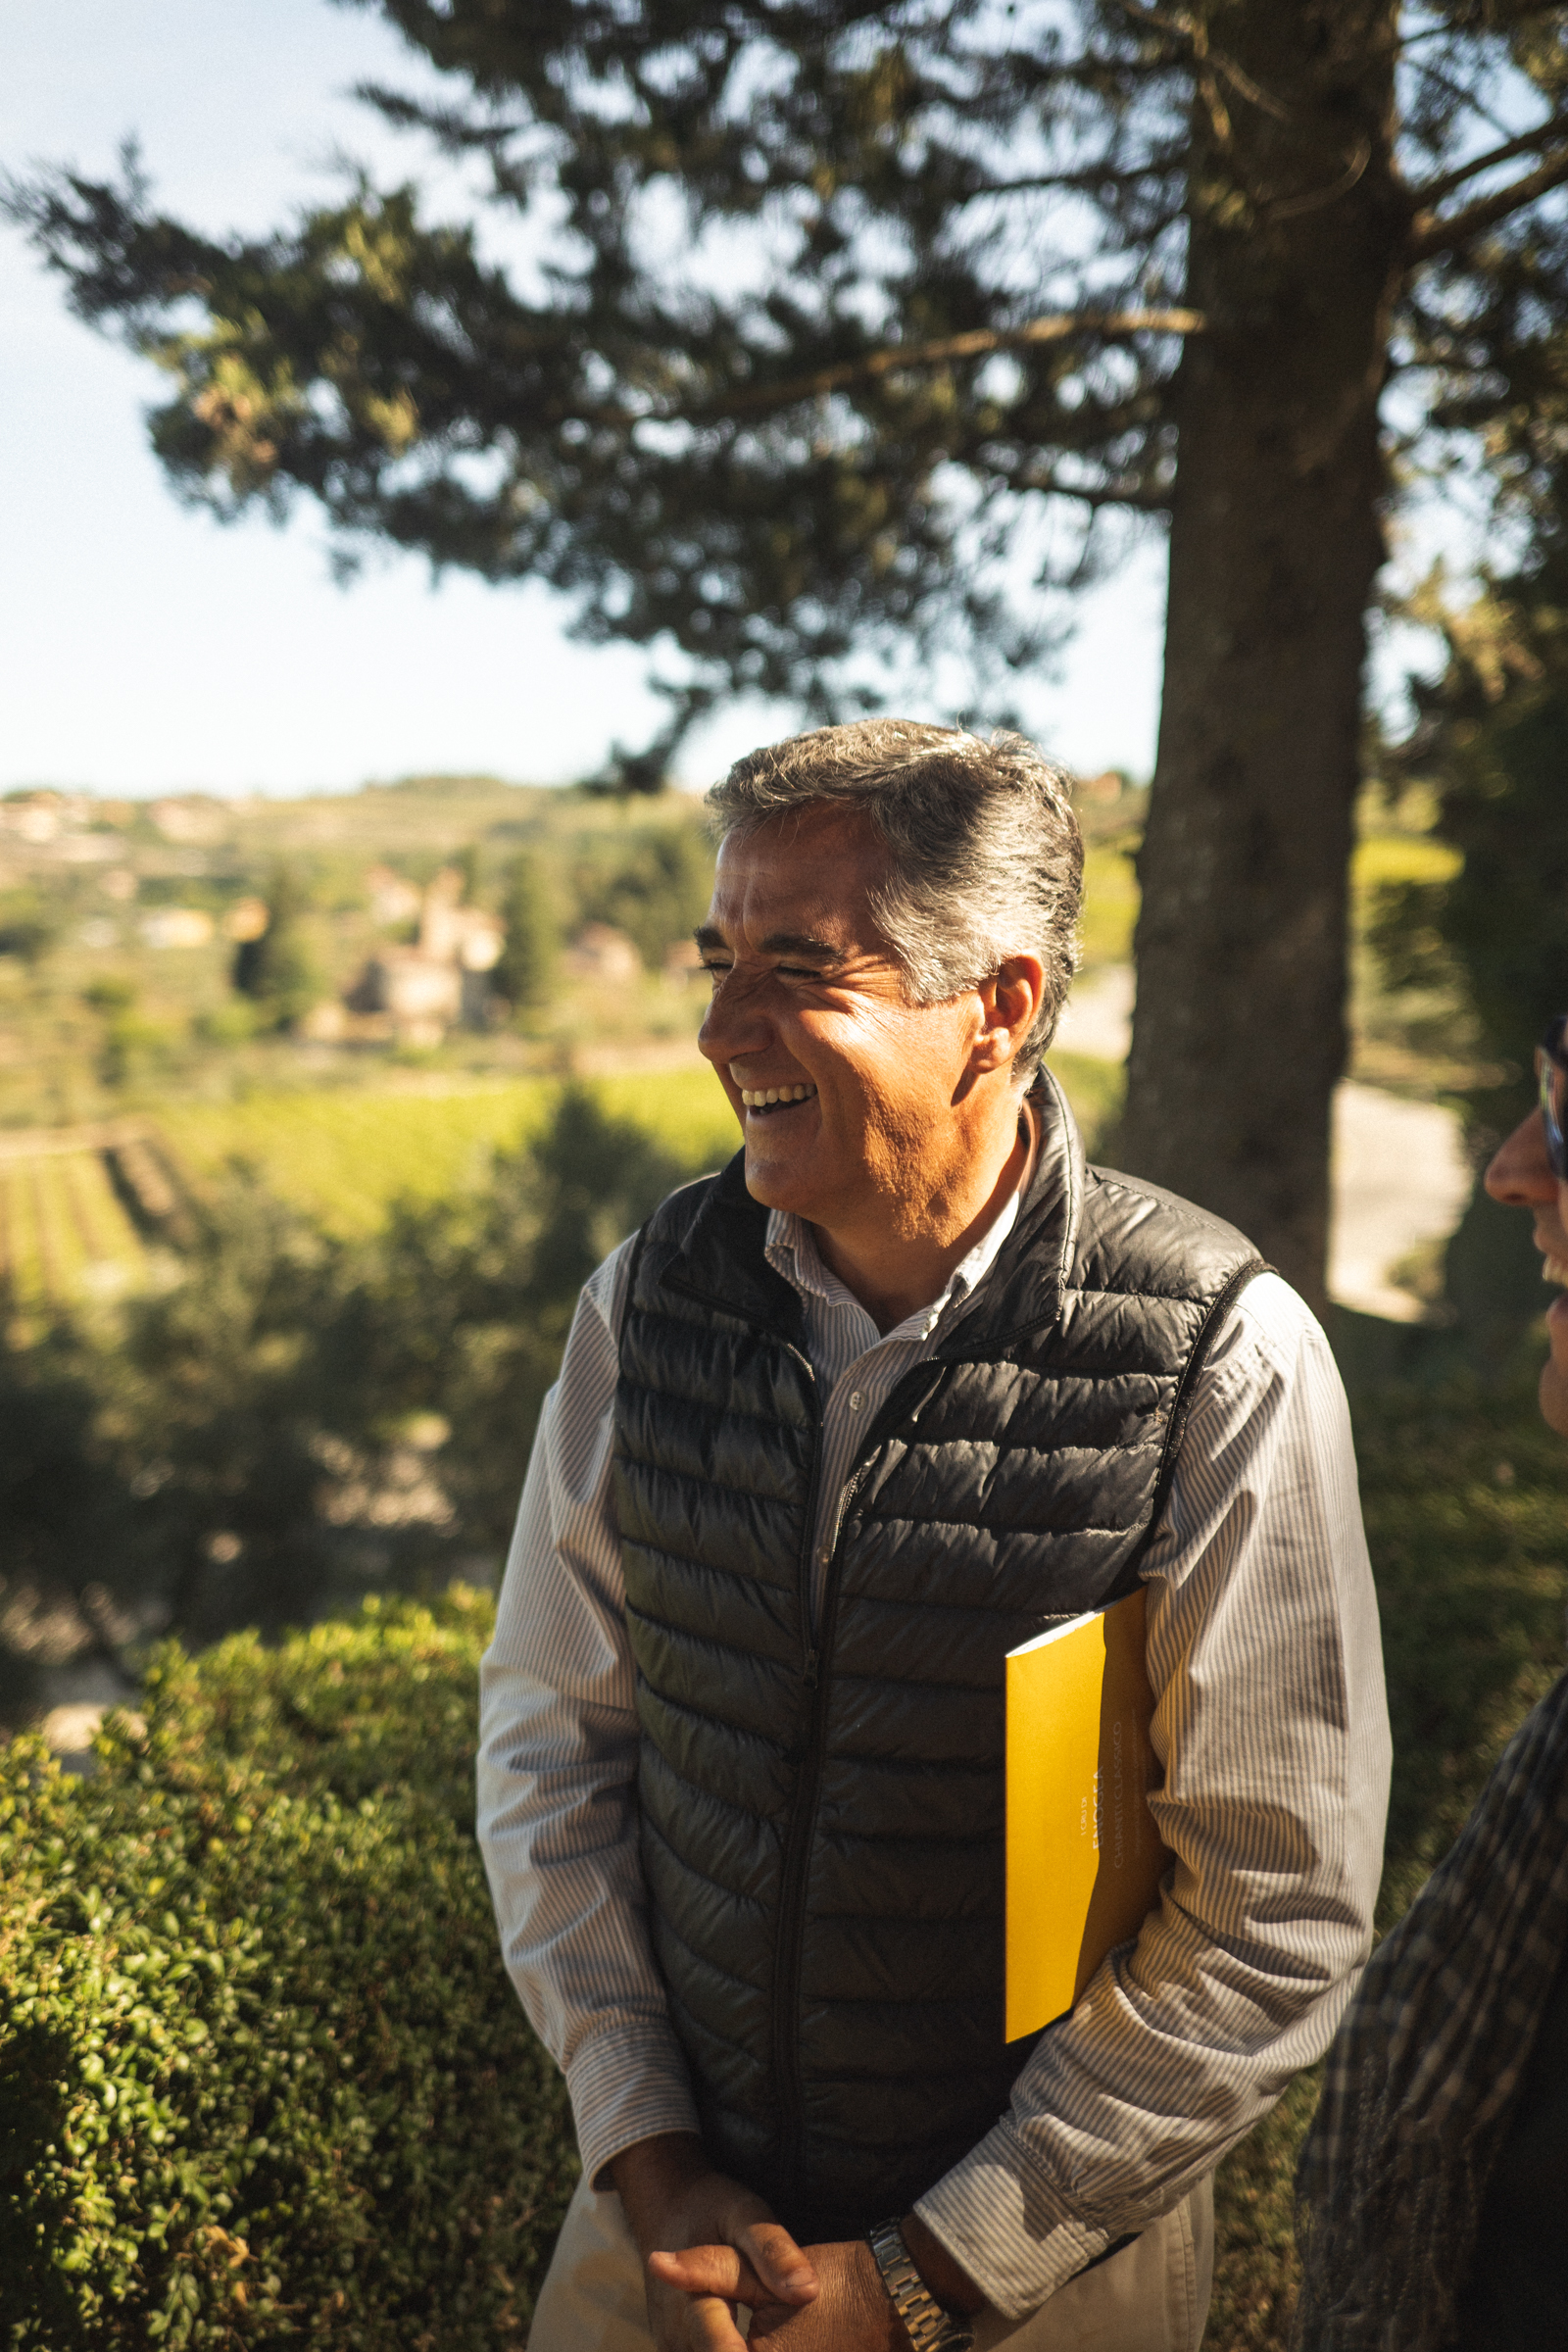 Owner of the Fontodi company in Panzano in Chianti Giovanni Manetti is the fourteenth president in the history of the oldest Italian Wine Consortium.